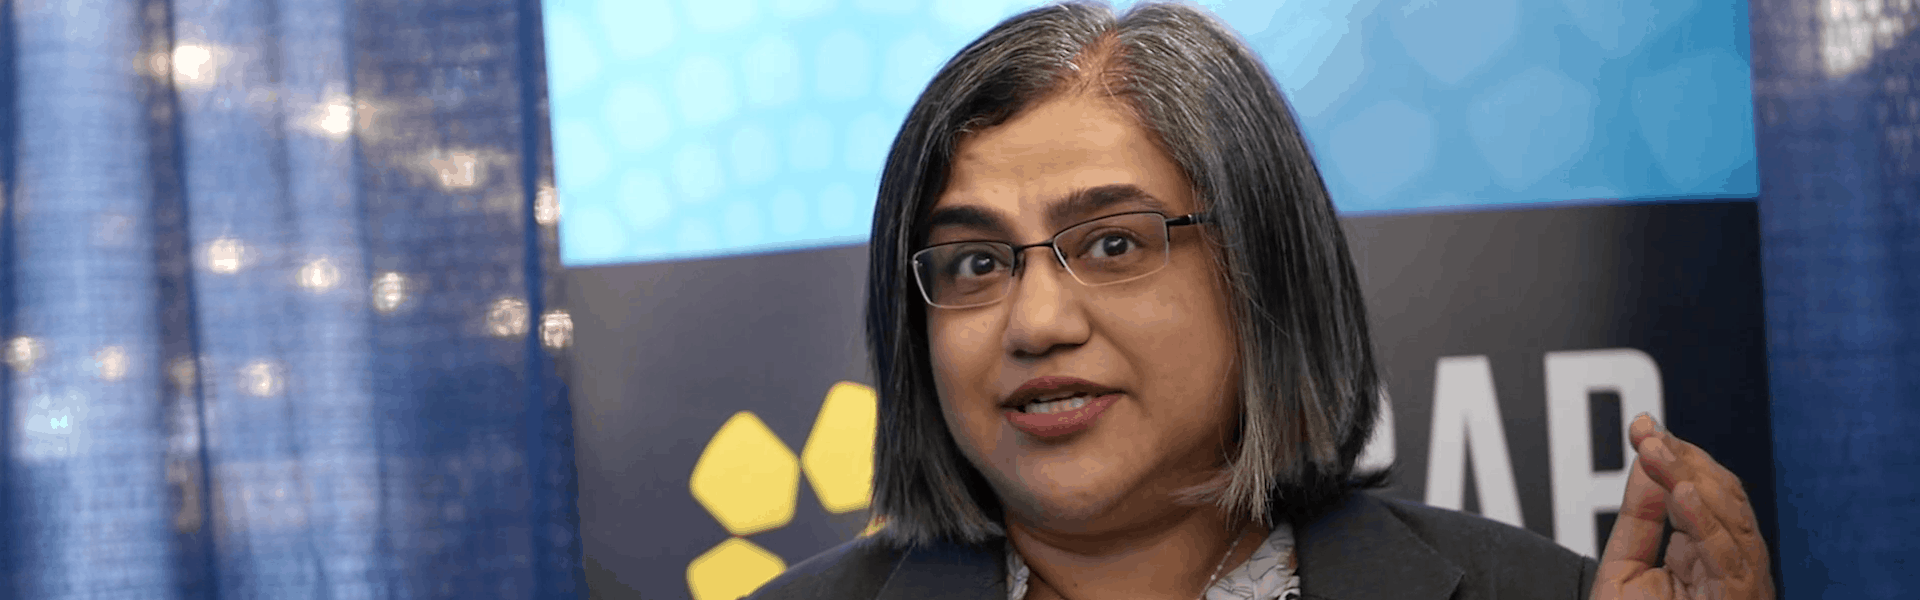 """A sweet spot for impact investing"": Omidyar Network's Roopa Kudva discusses India's growing prominence"